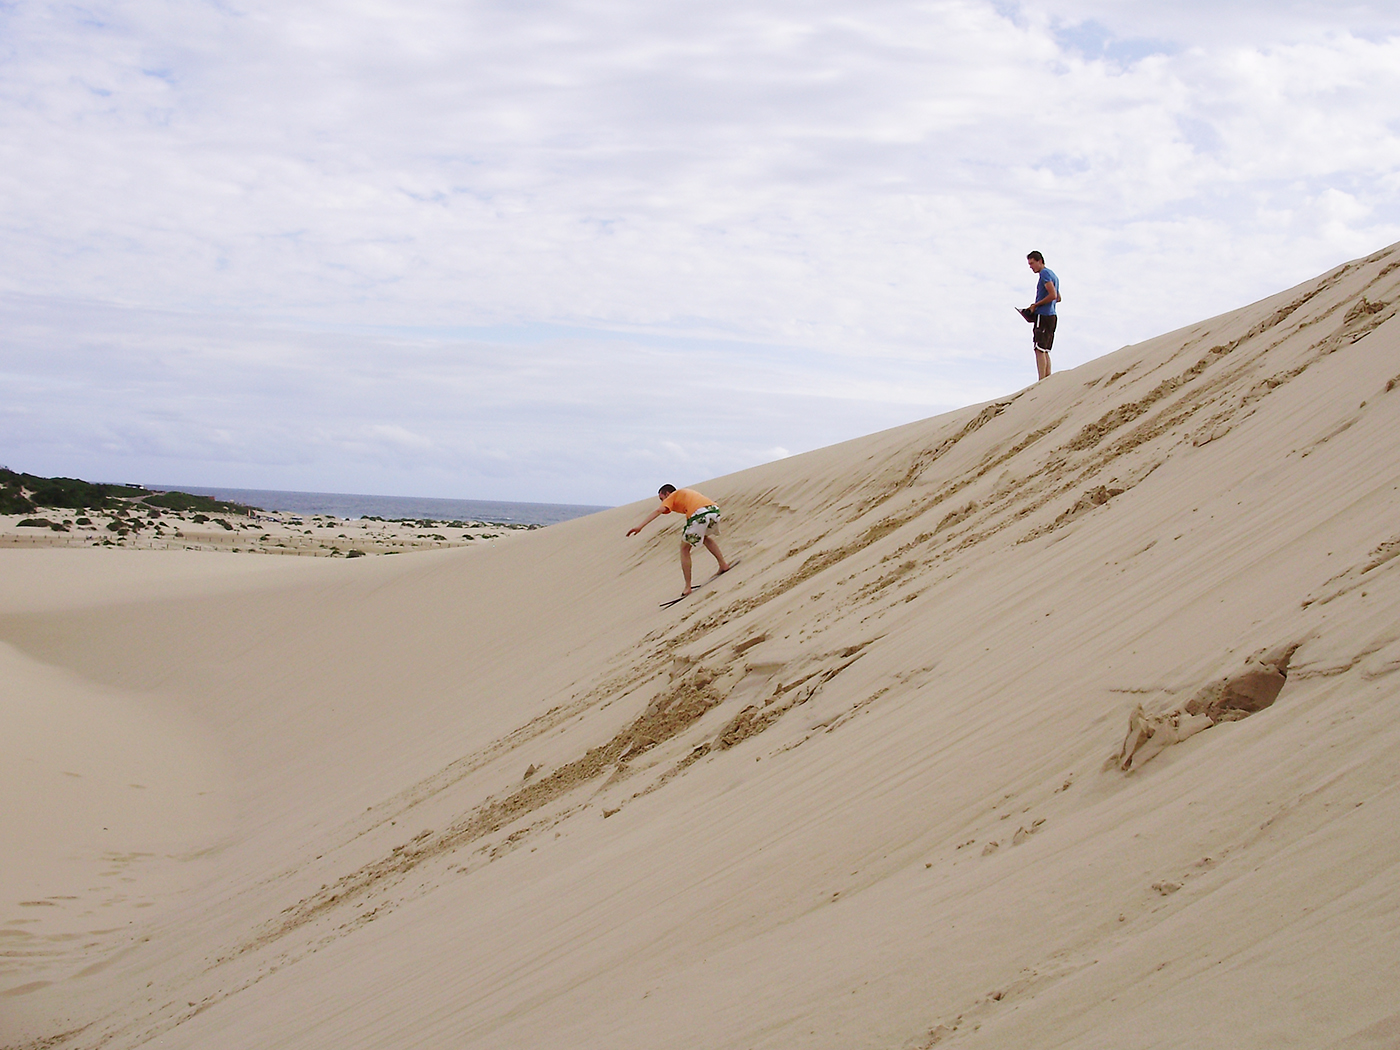 Sandboarding at Port Stephens